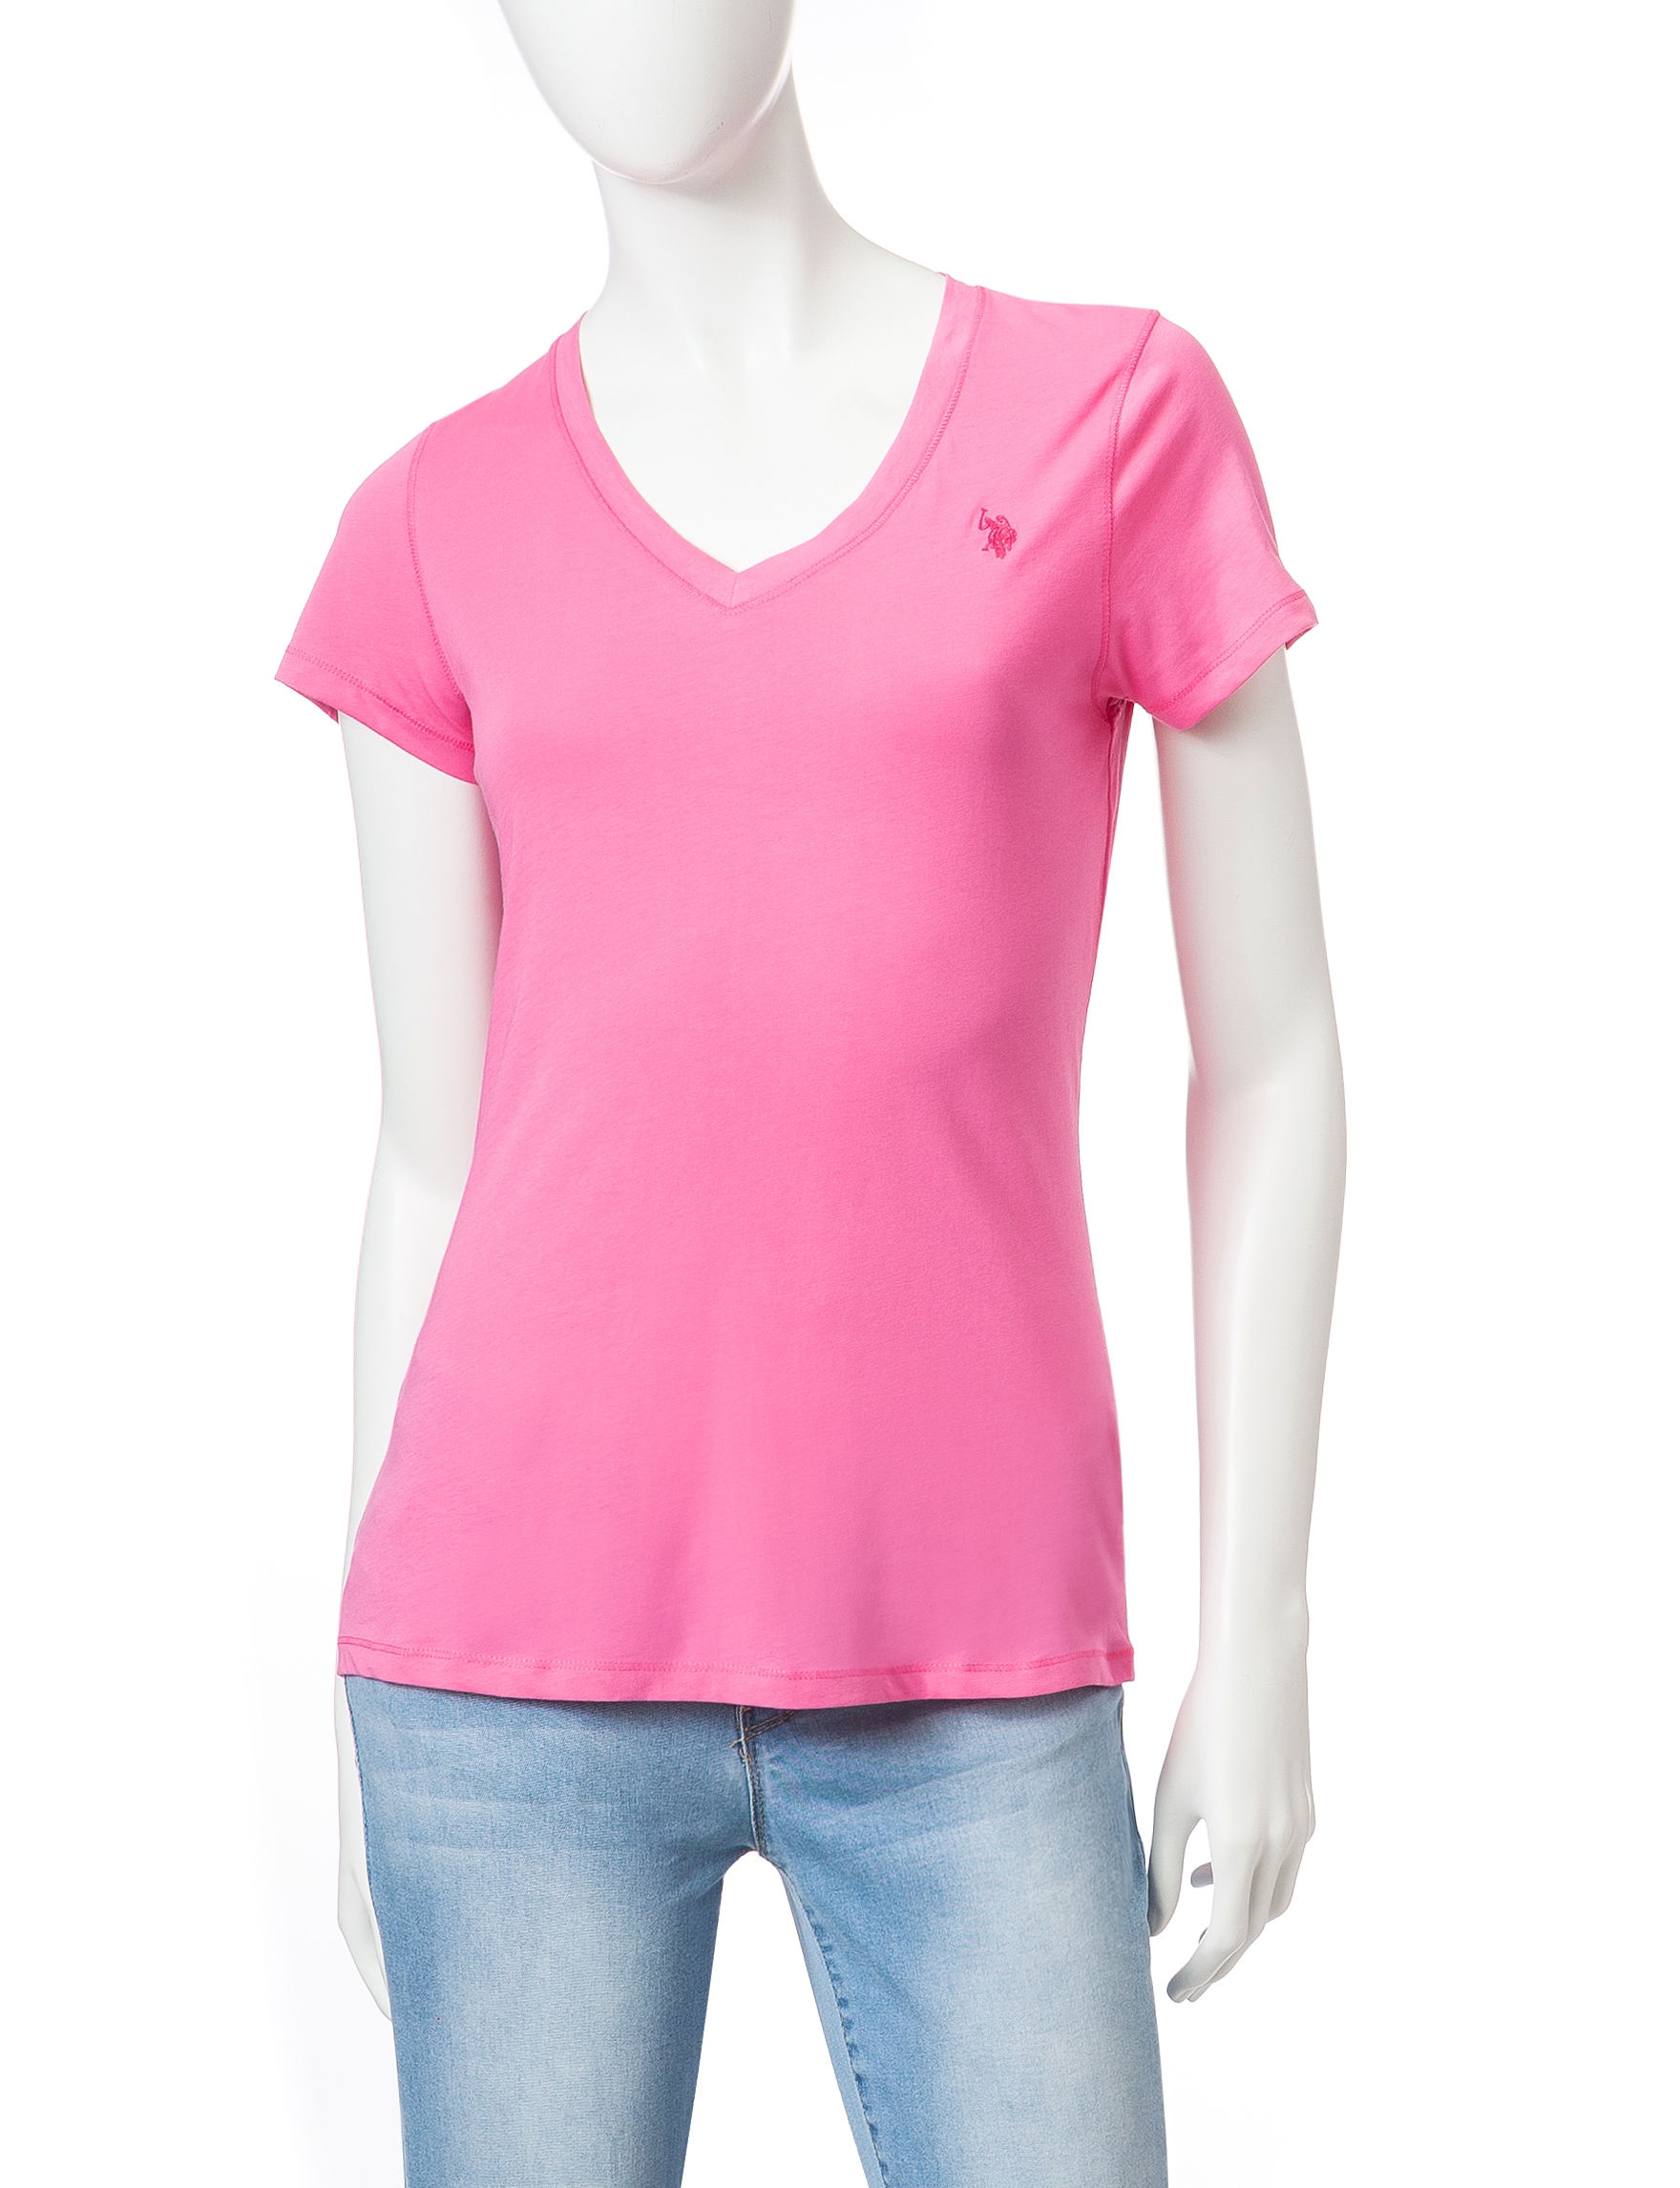 U.S. Polo Assn. Bright Pink Tees & Tanks